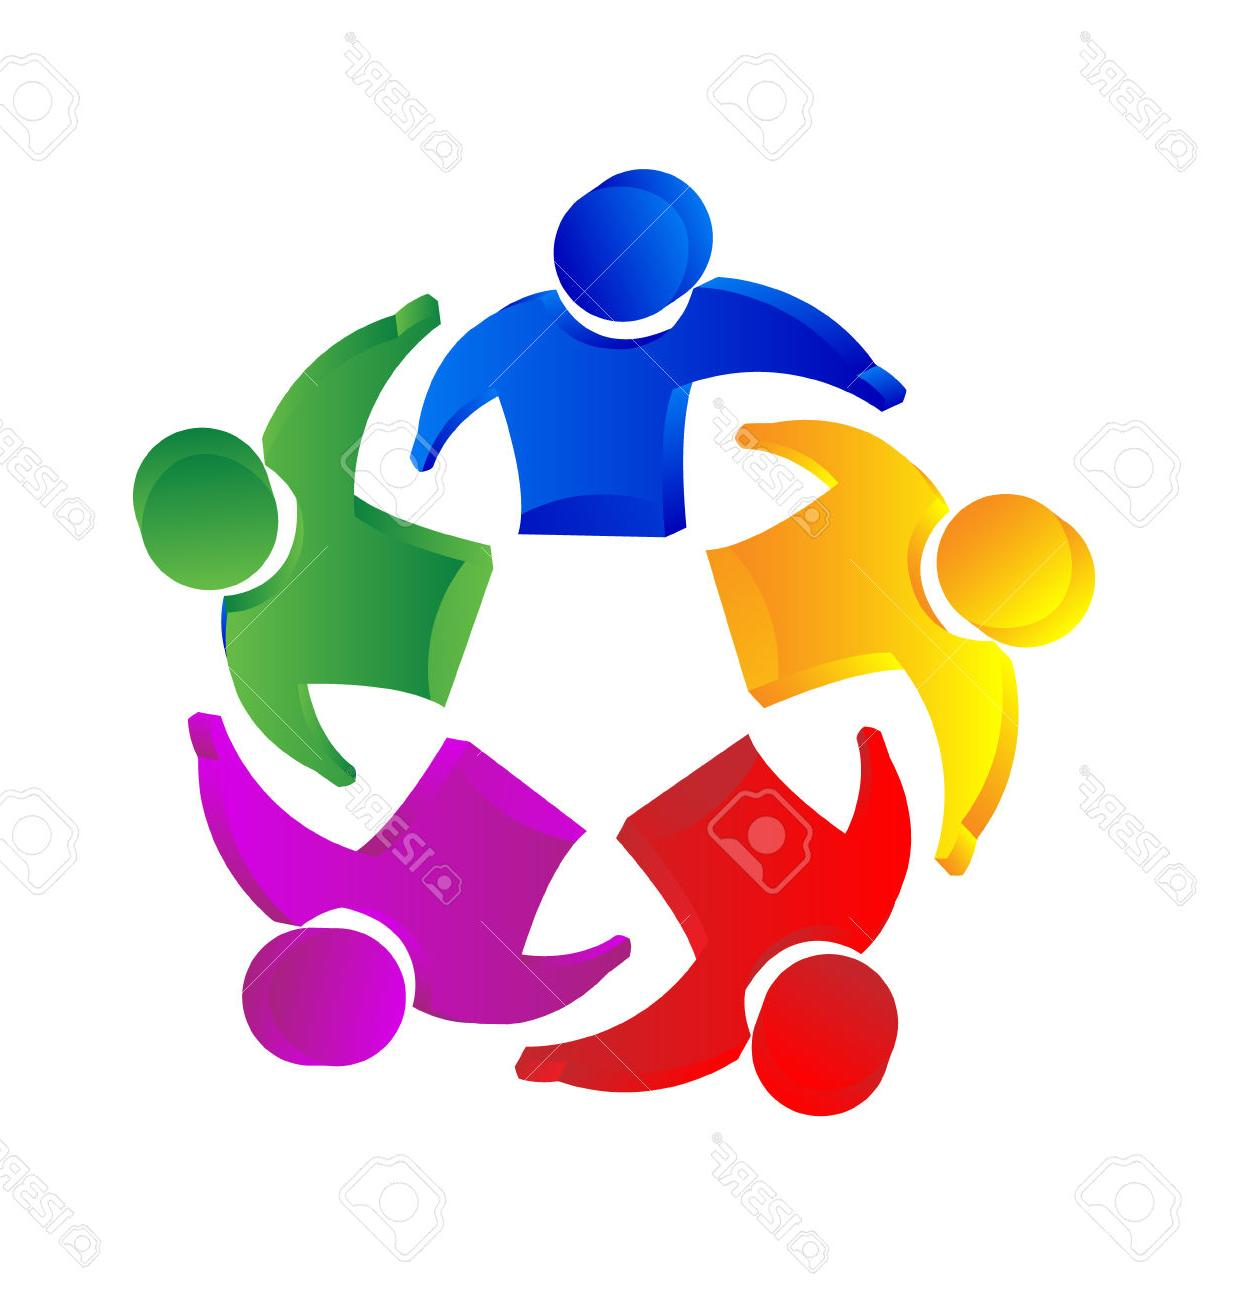 hight resolution of 1235x1300 best 15 teamwork people unity concept icon vector stock family